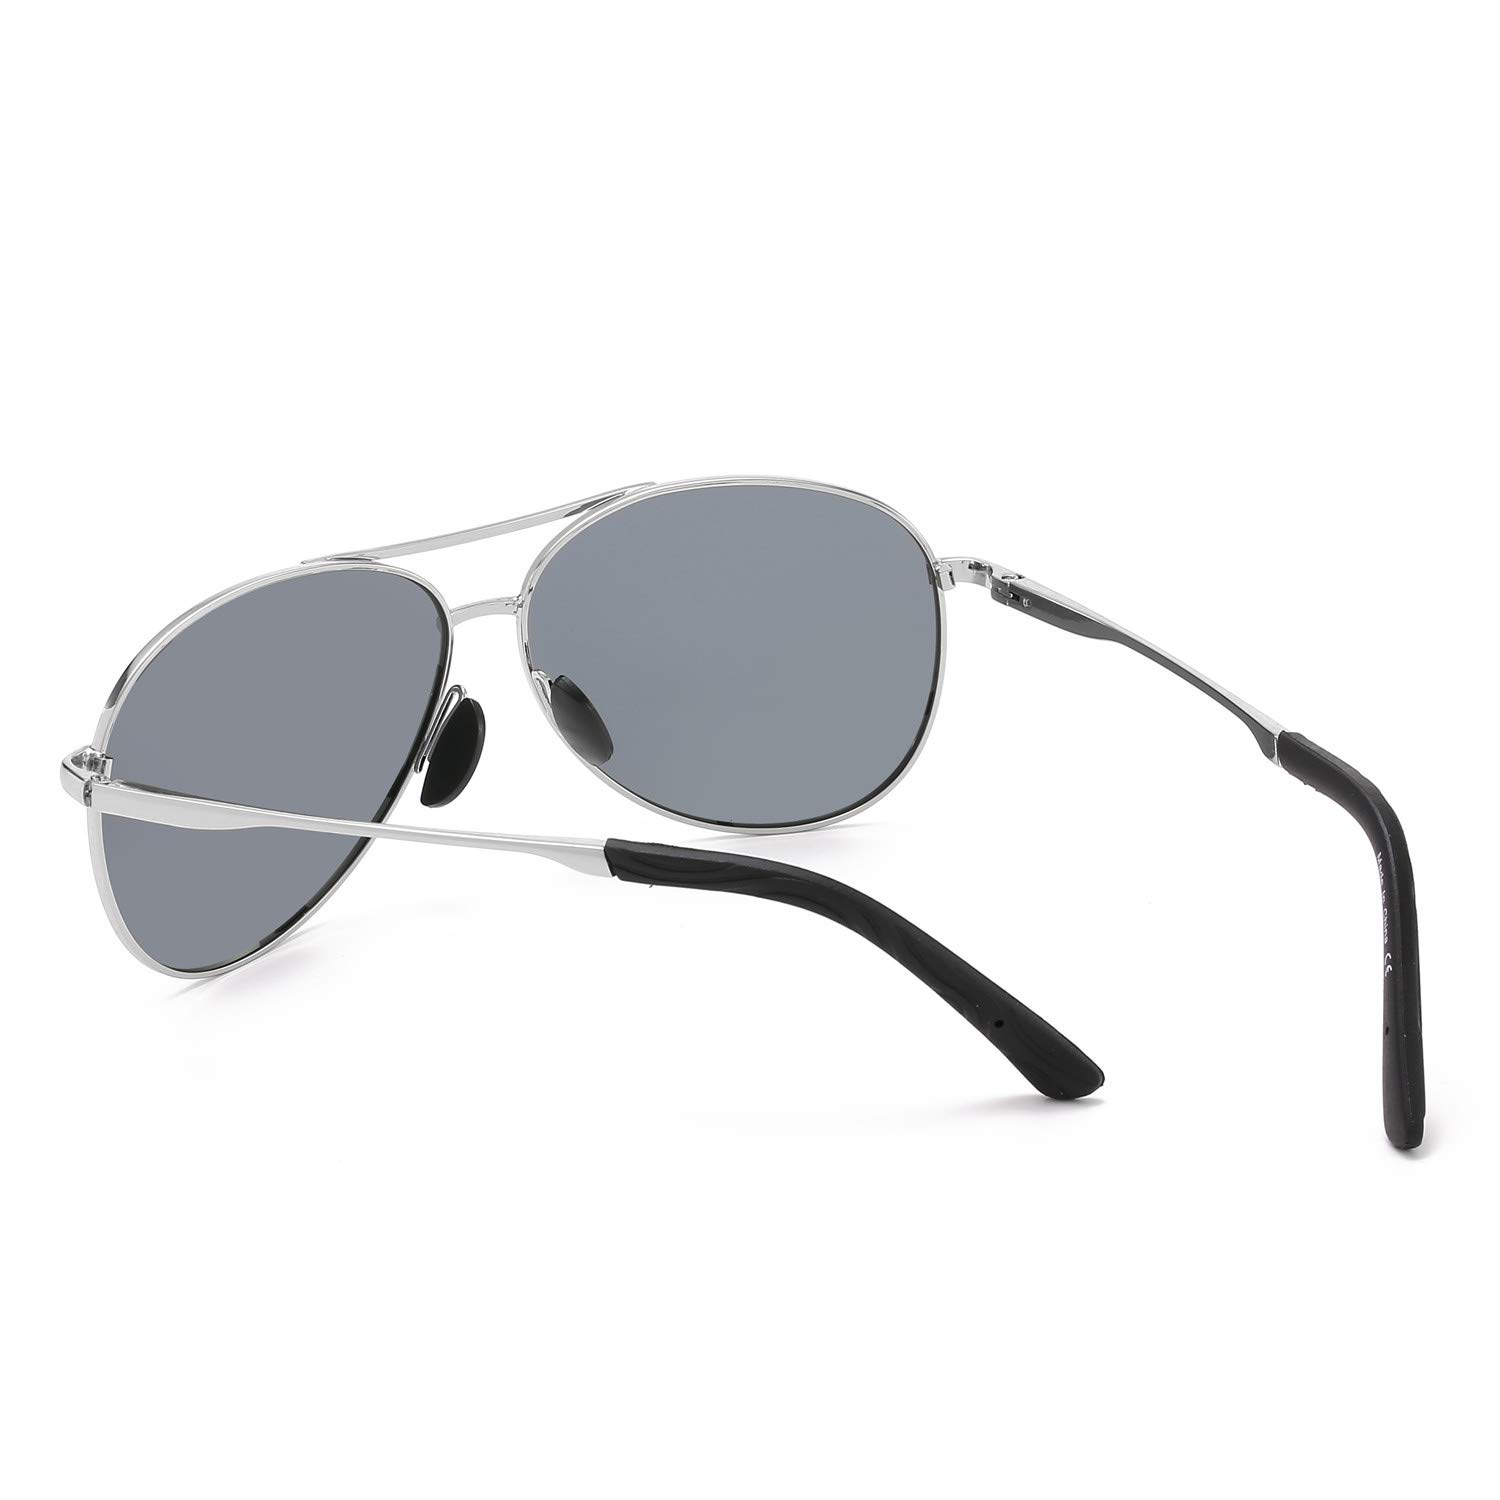 98825e9a65b Polarized Aviator Sunglasses for Men and Women-100 UV Protection Mirrored  Lens -Metal Frame with Spring ...